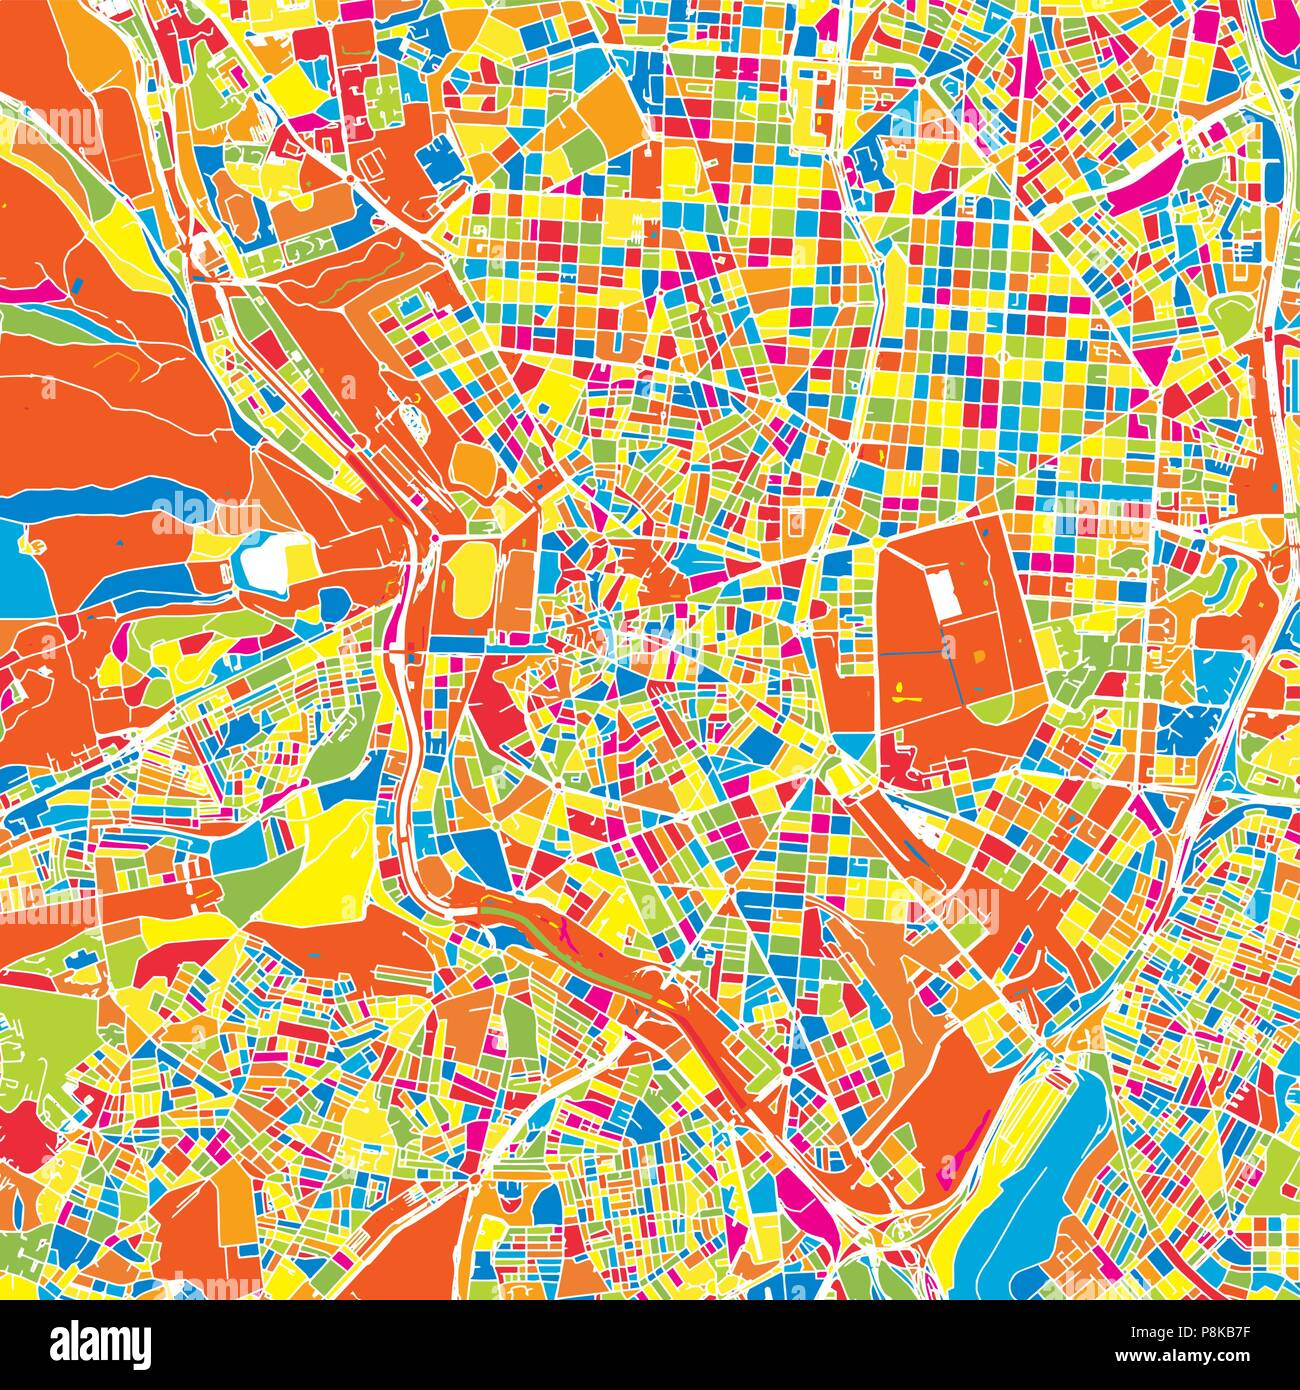 Madrid, Spain, colorful vector map.  White streets, railways and water. Bright colored landmark shapes. Art print pattern. - Stock Vector